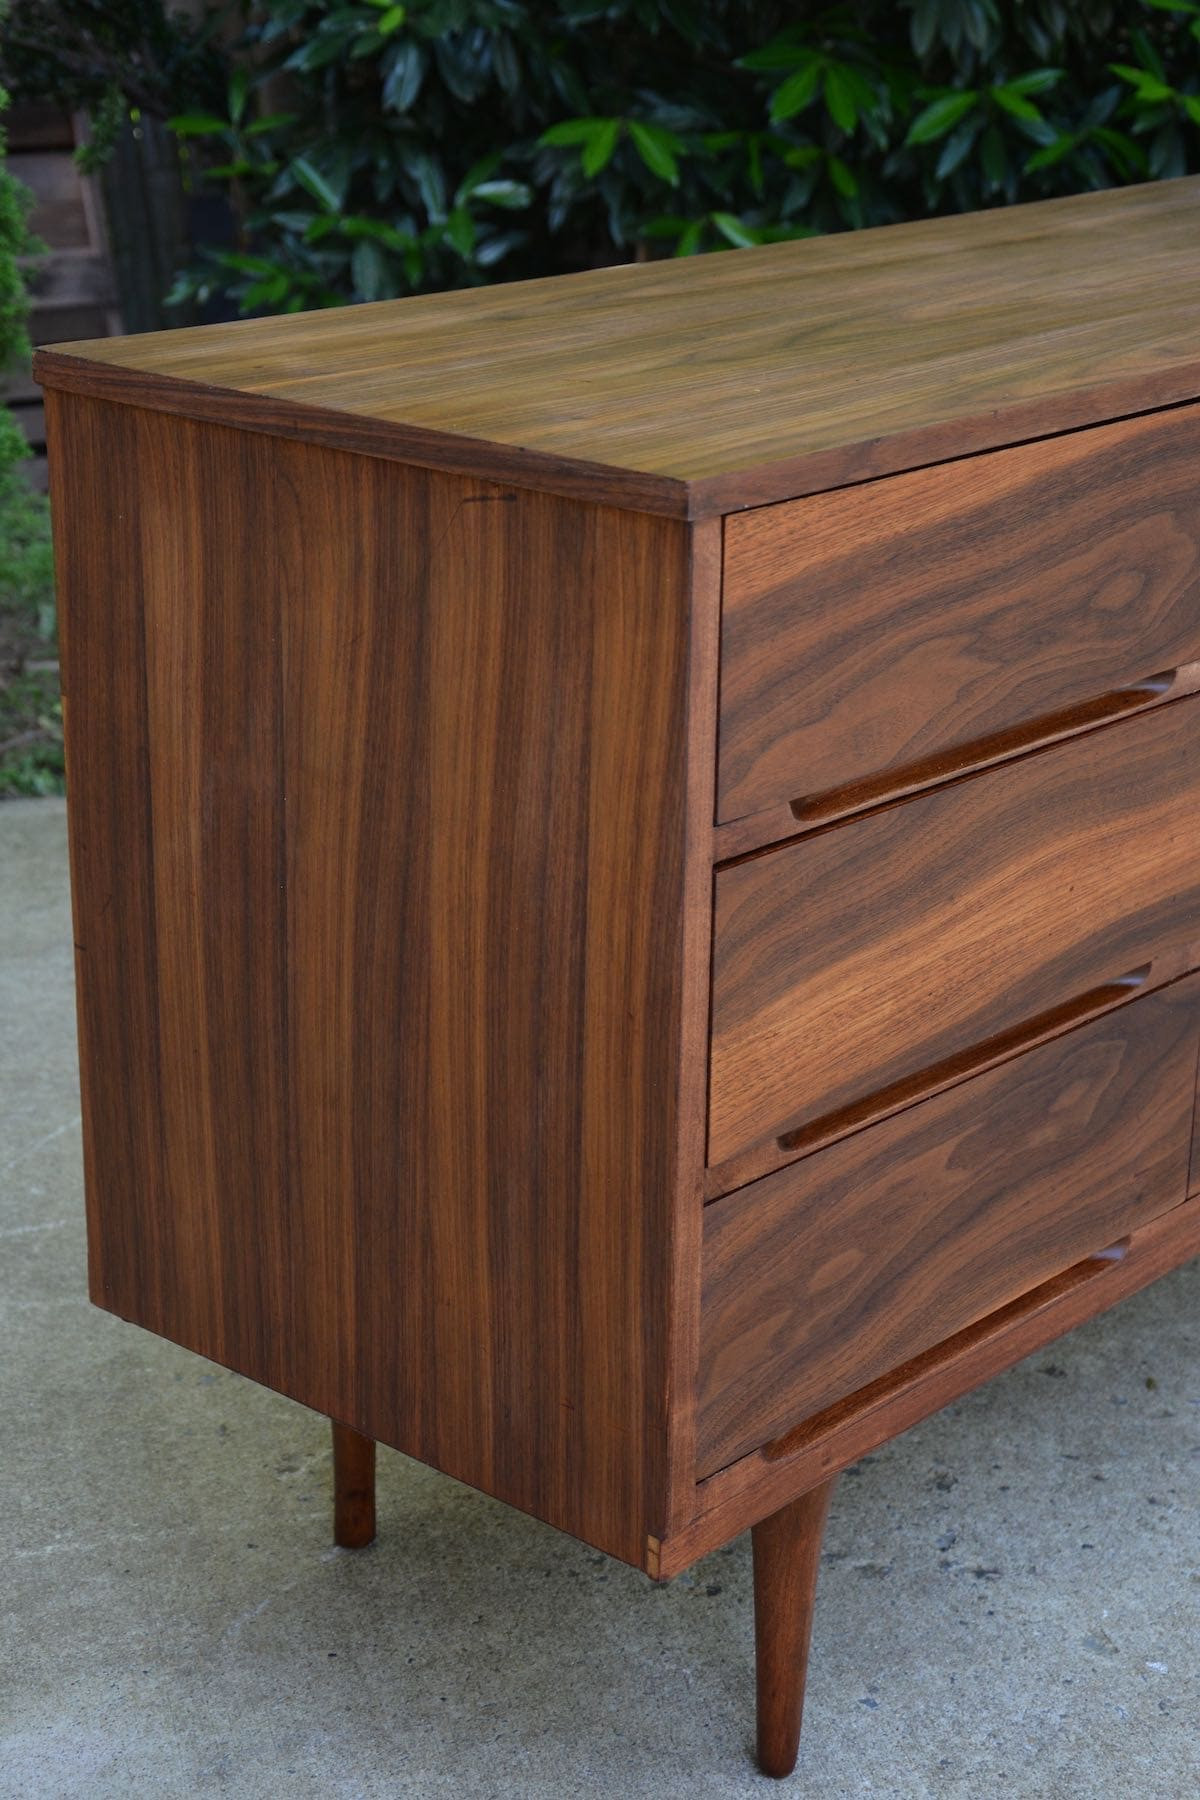 sanding hardwood floors against the grain of when should you not paint wood furniture throughout when should you not paint wood furniture mid century modern dresser gets stripped with gorgeous